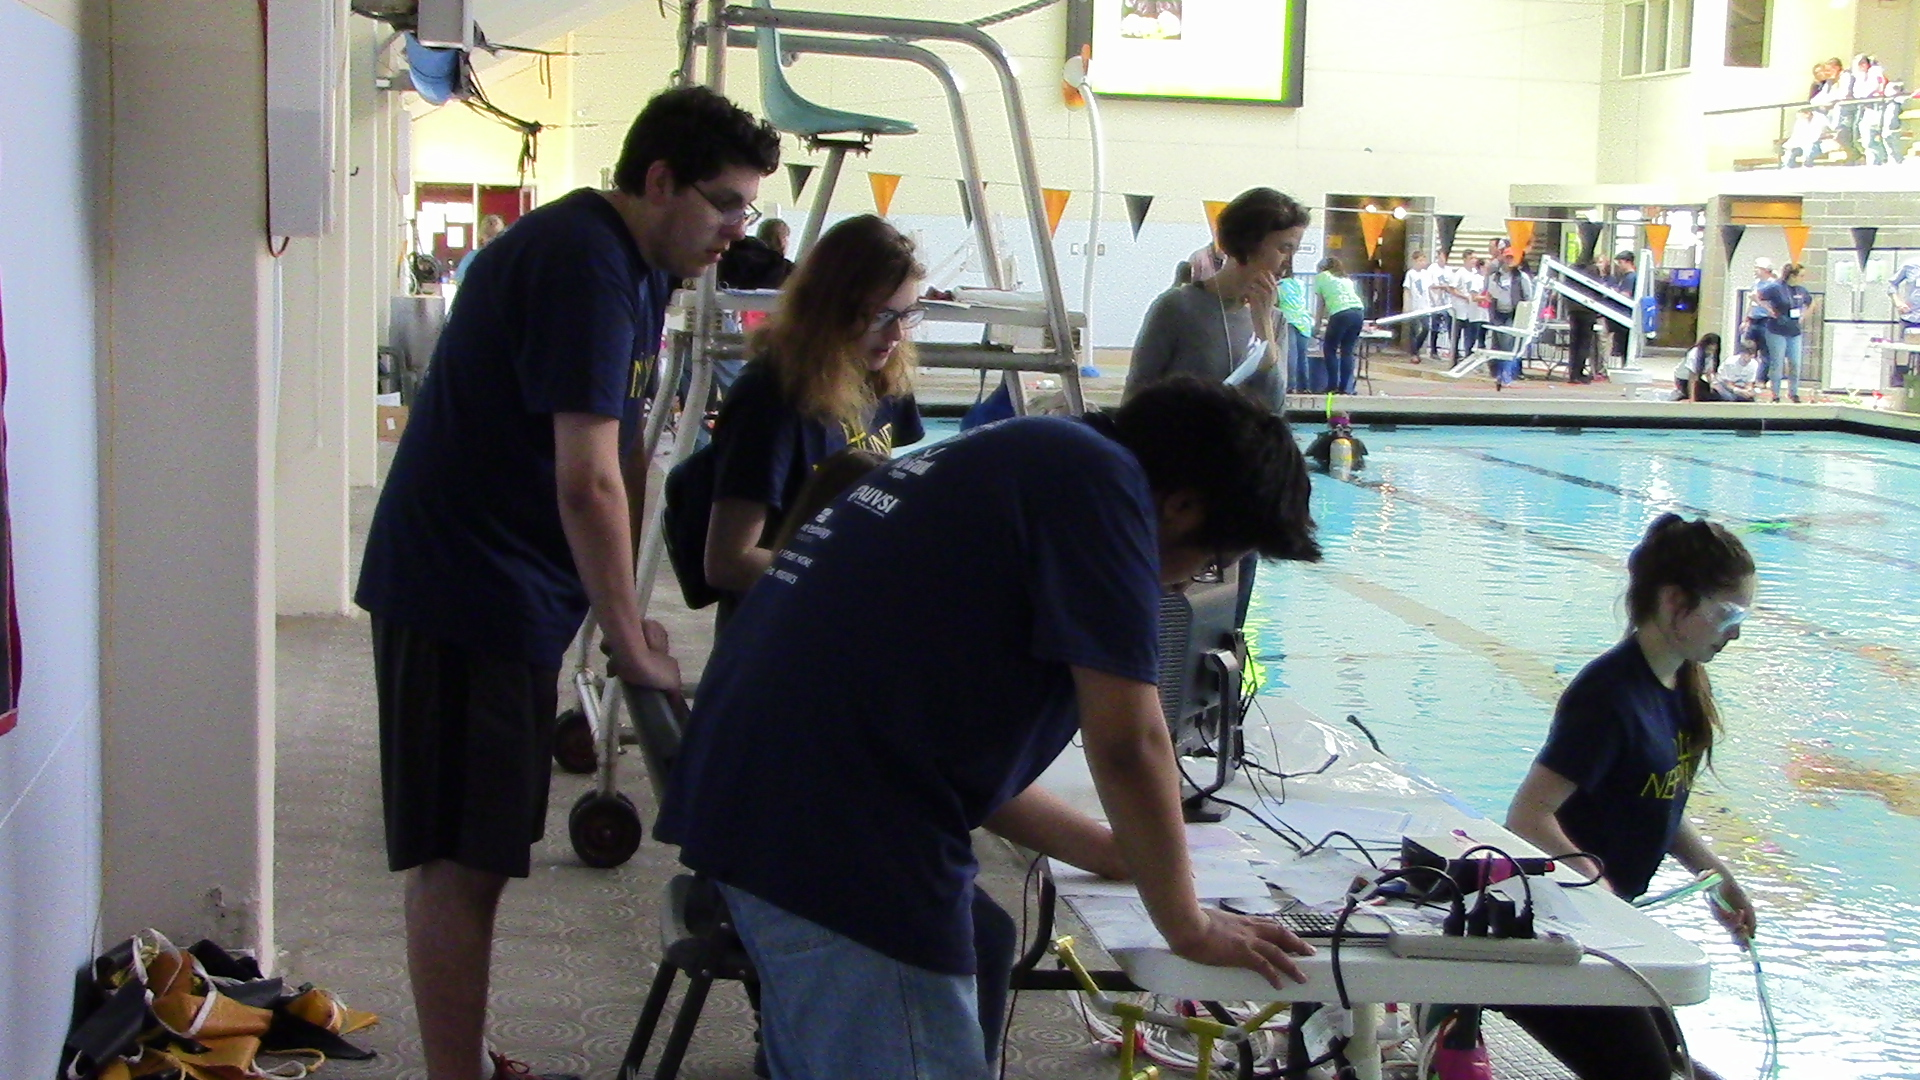 MATE ROV competition